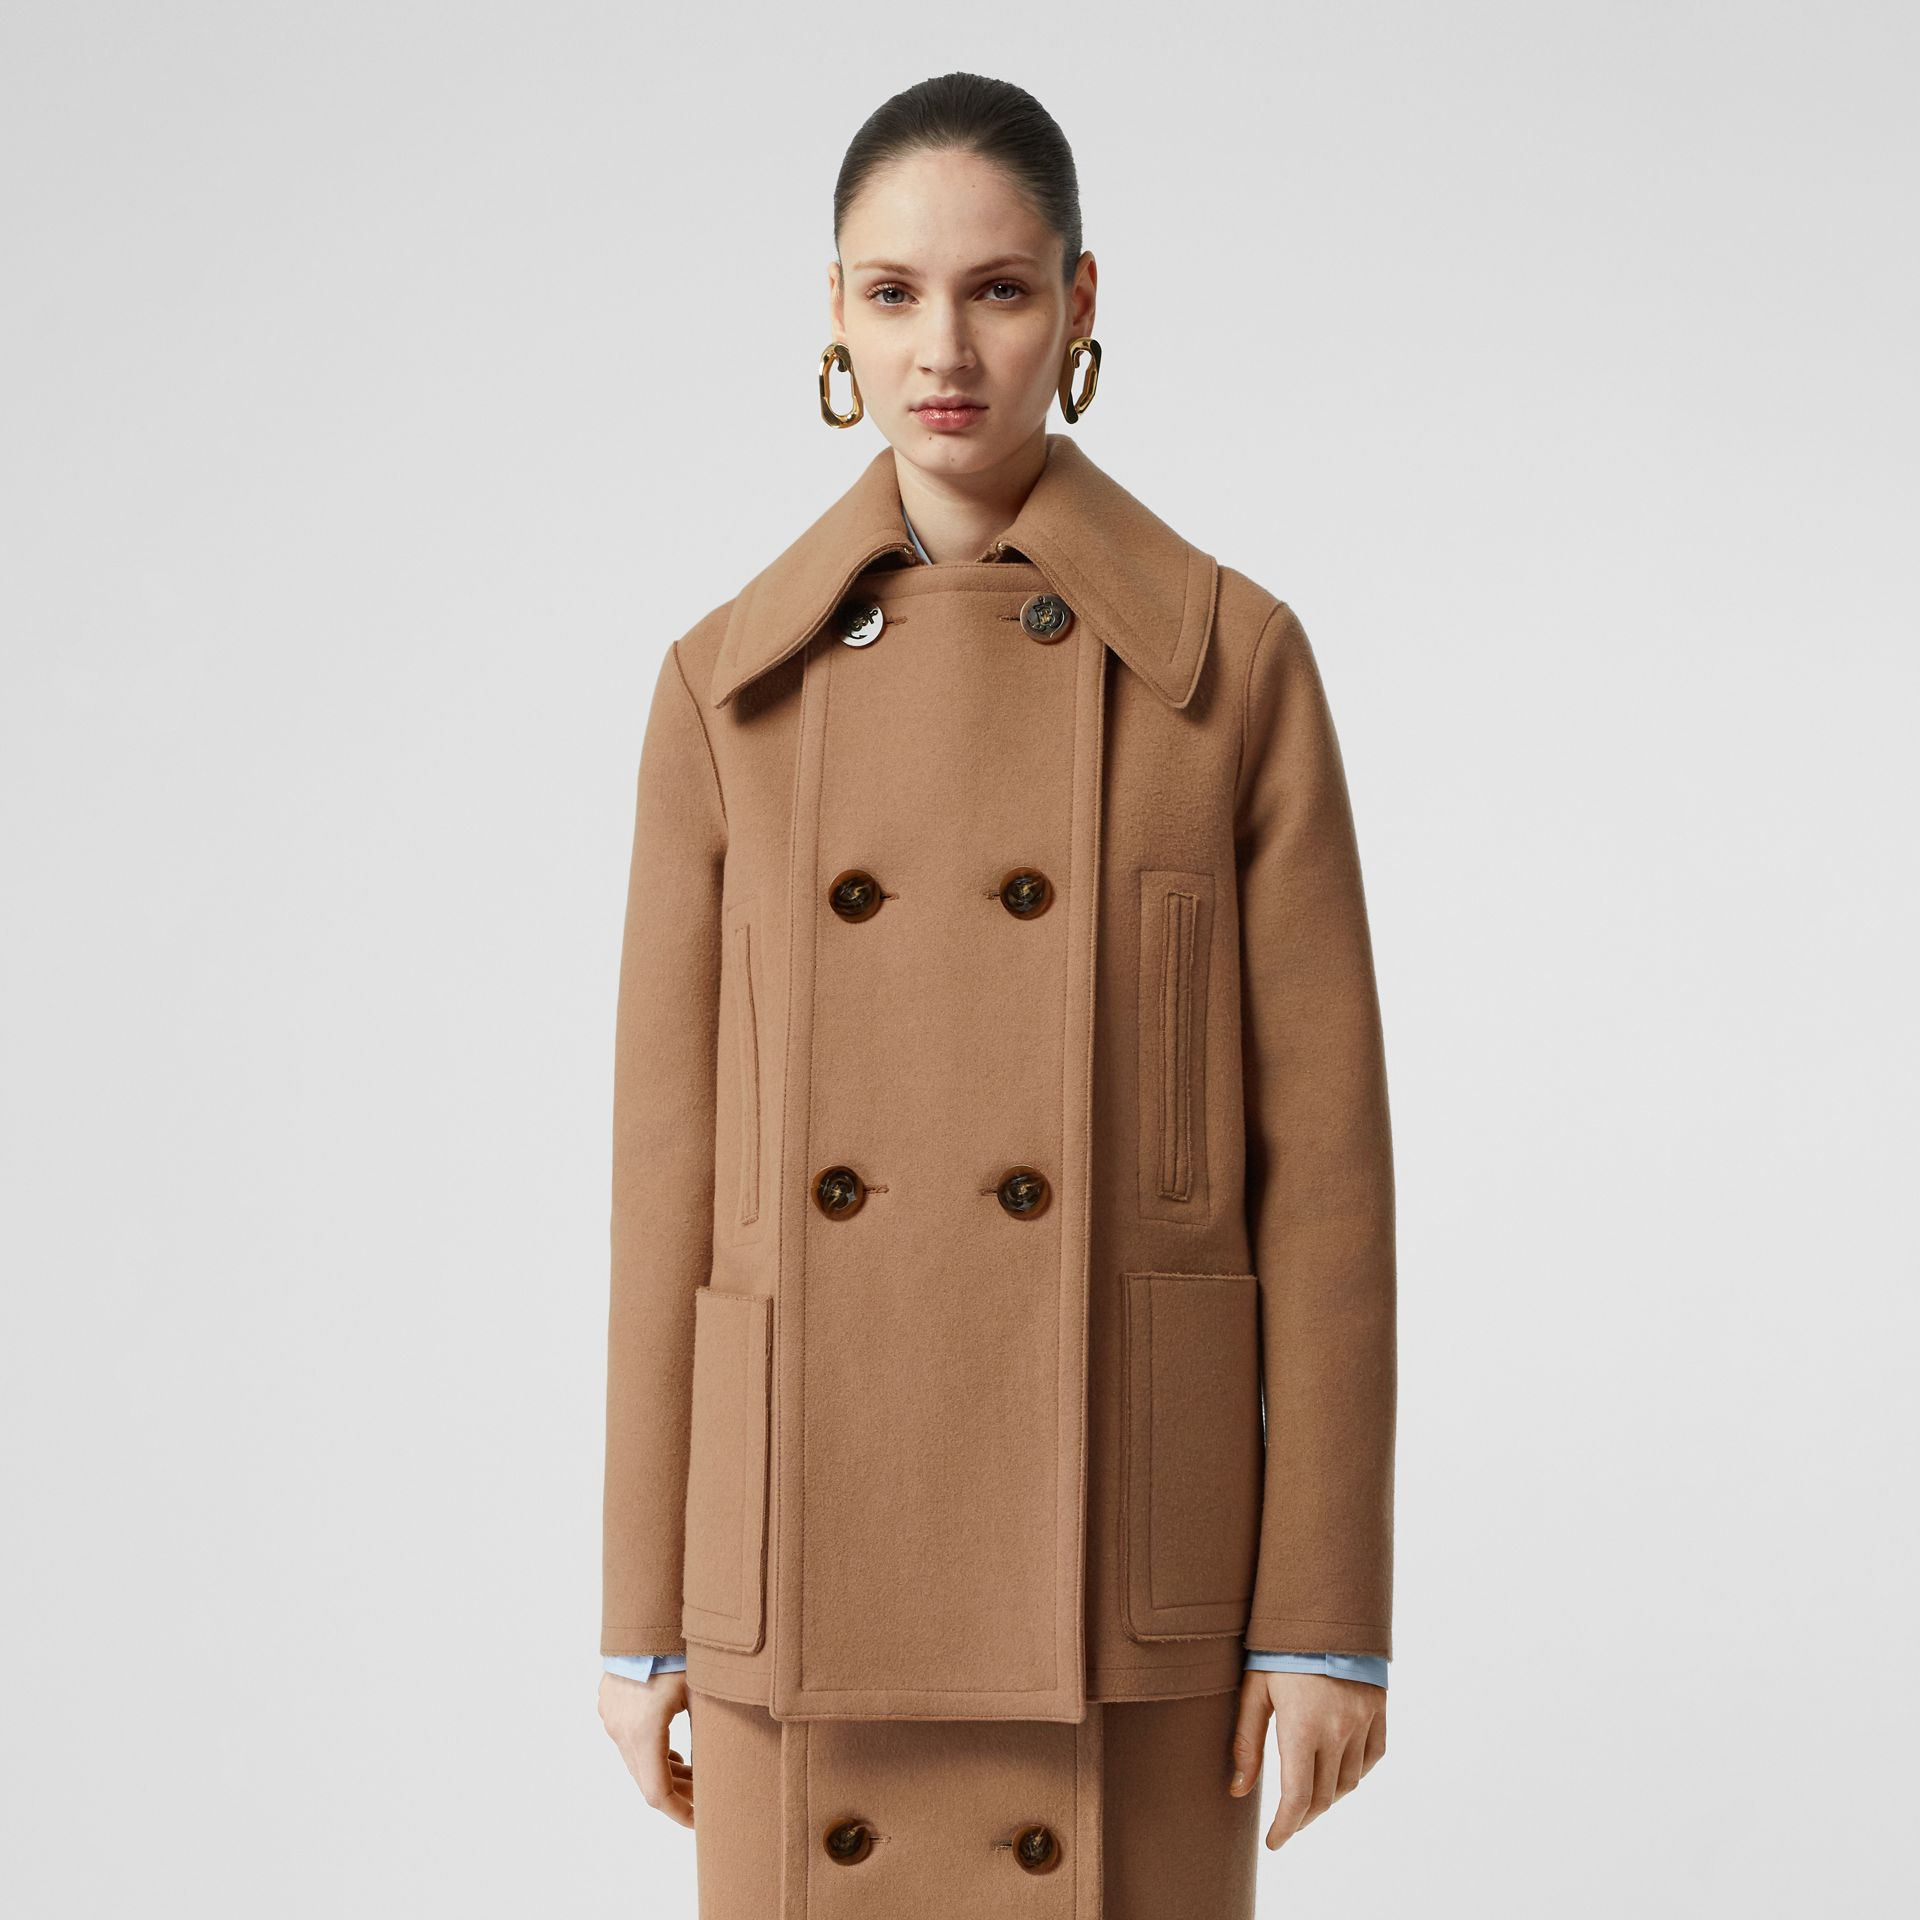 Button Panel Detail Wool Cashmere Pea Coat in Camel - Women | Burberry - gallery image 5